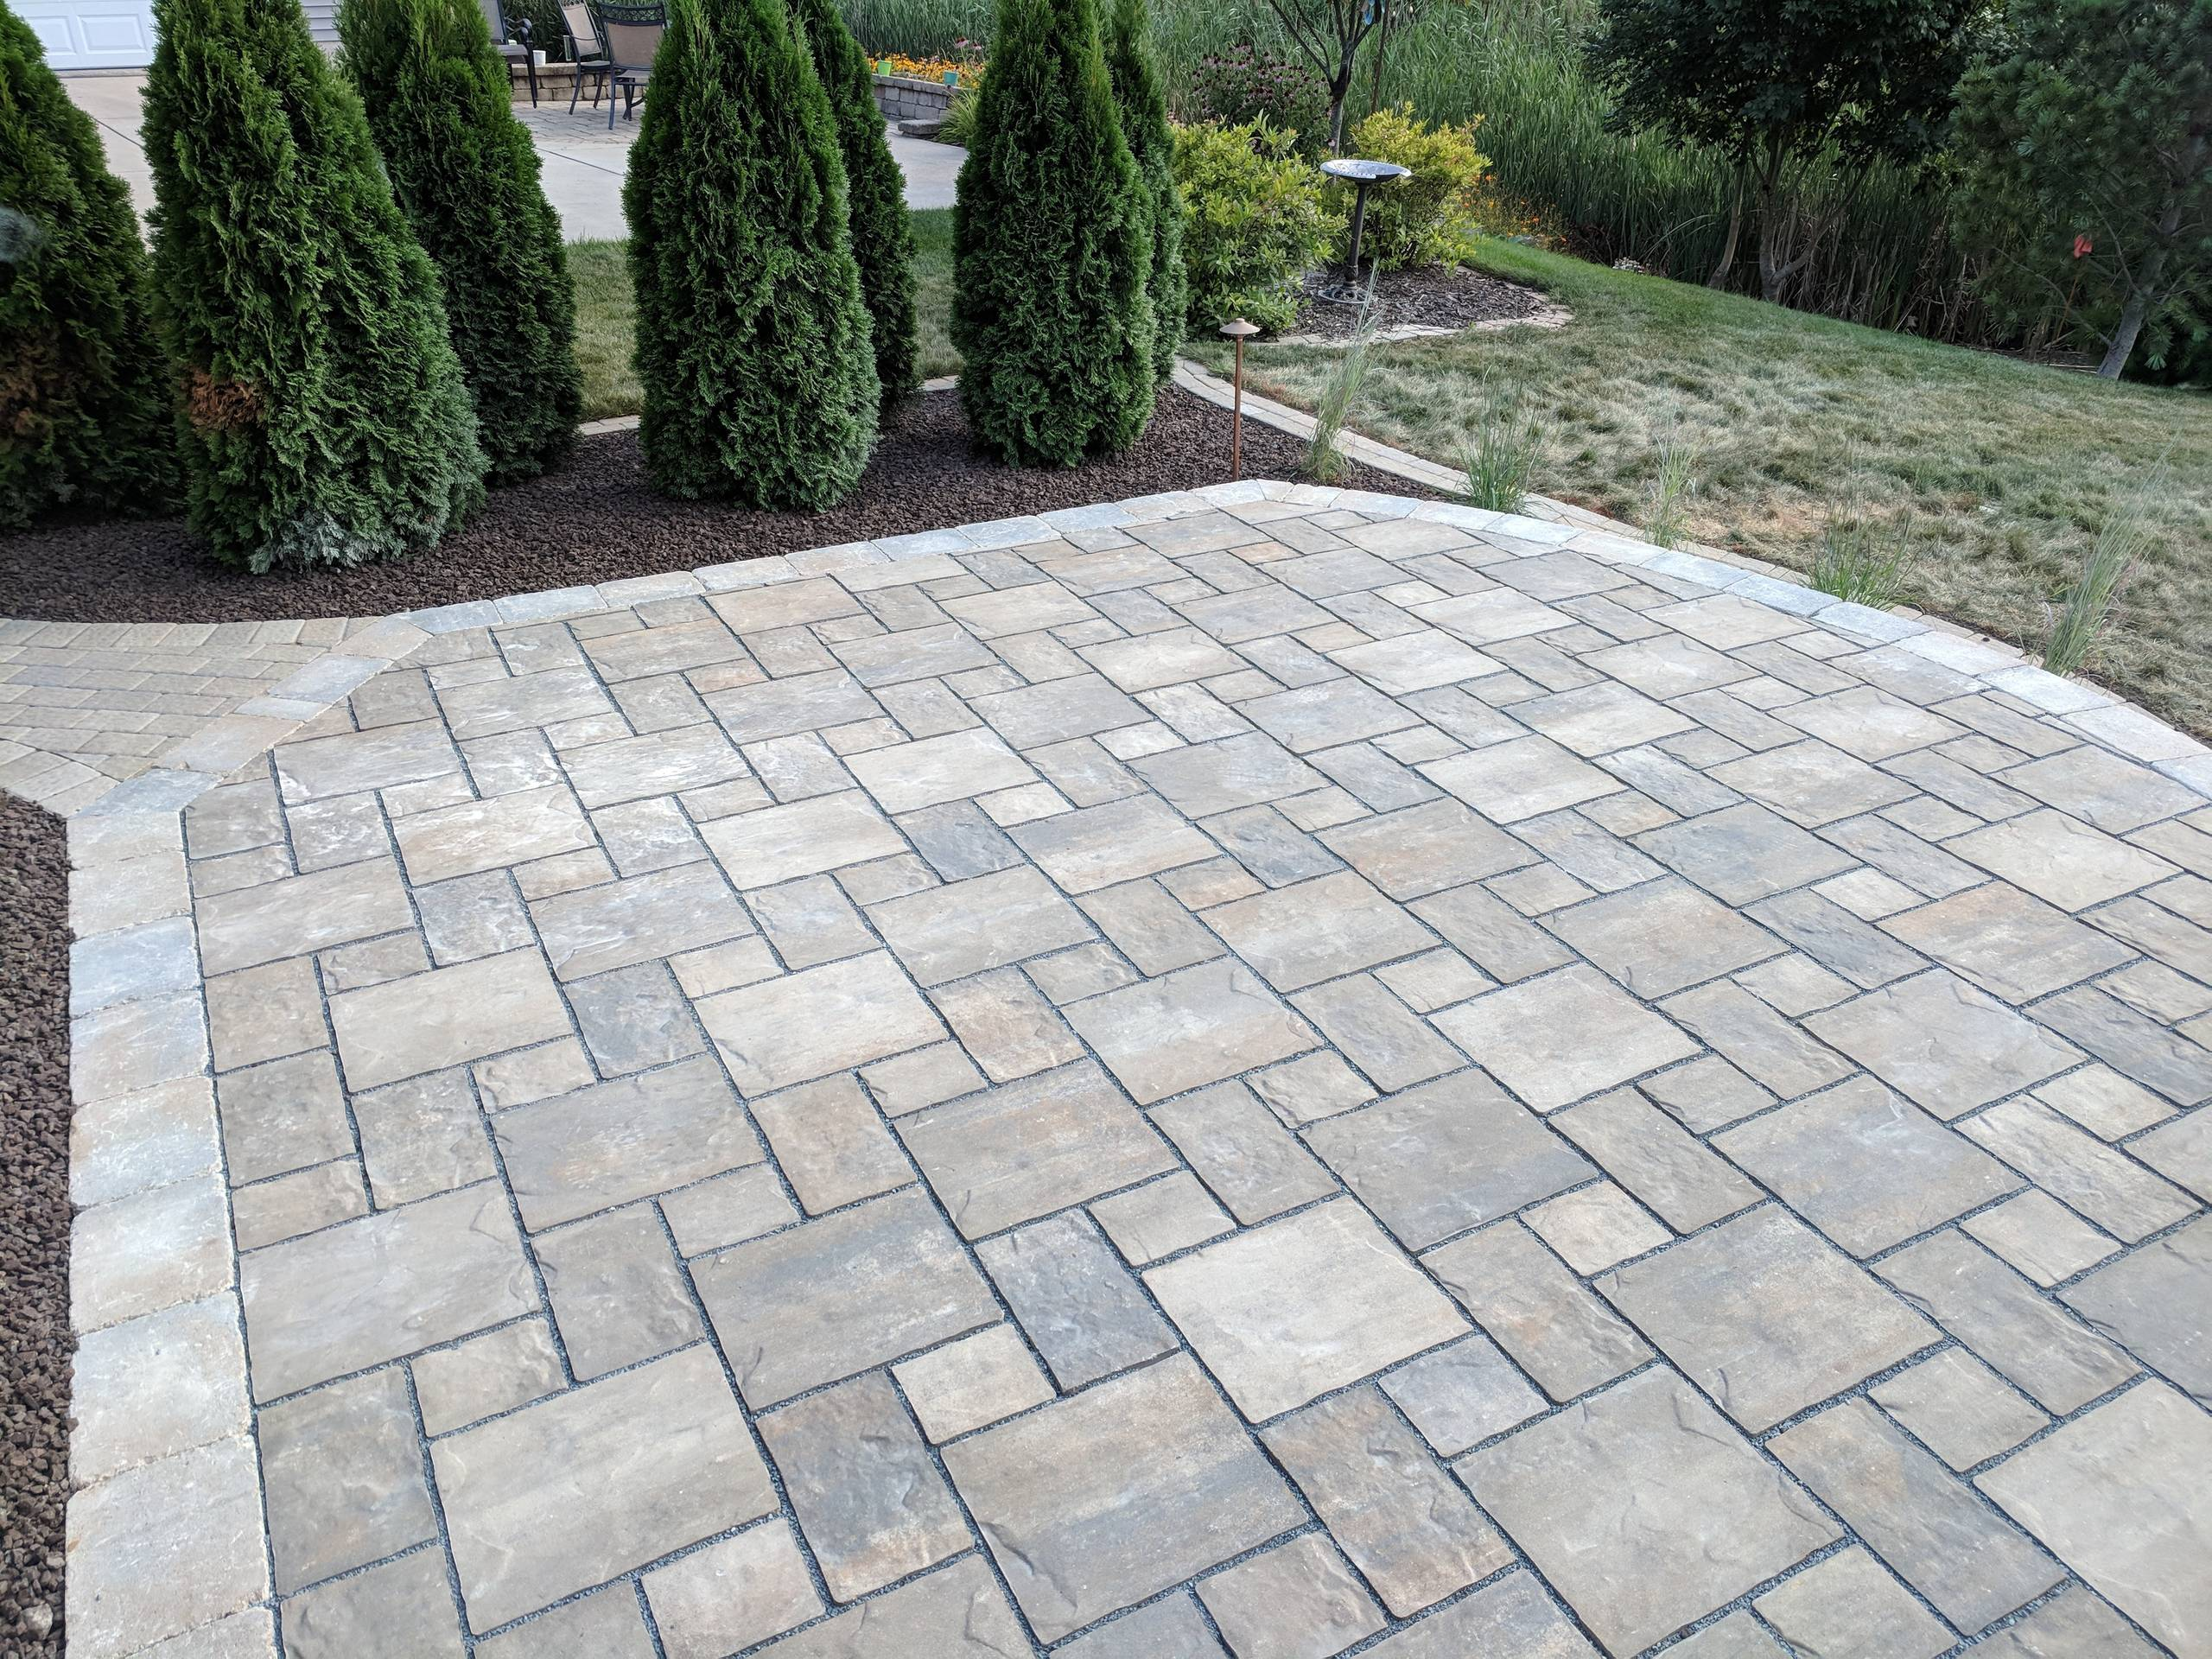 Crown Point Patio and Lighting